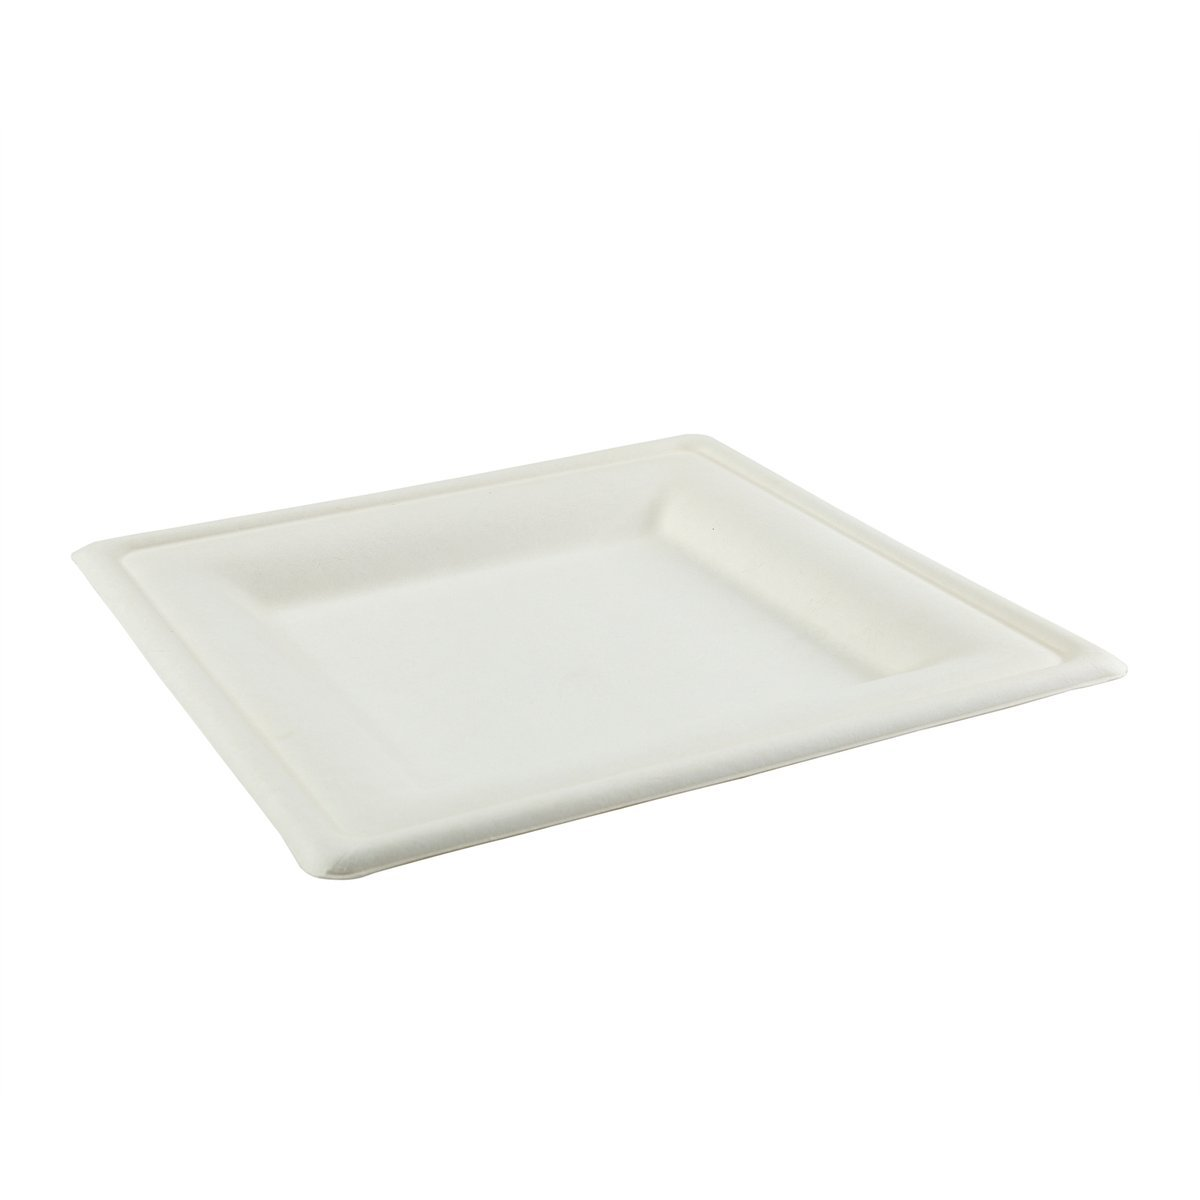 10in Square Plate